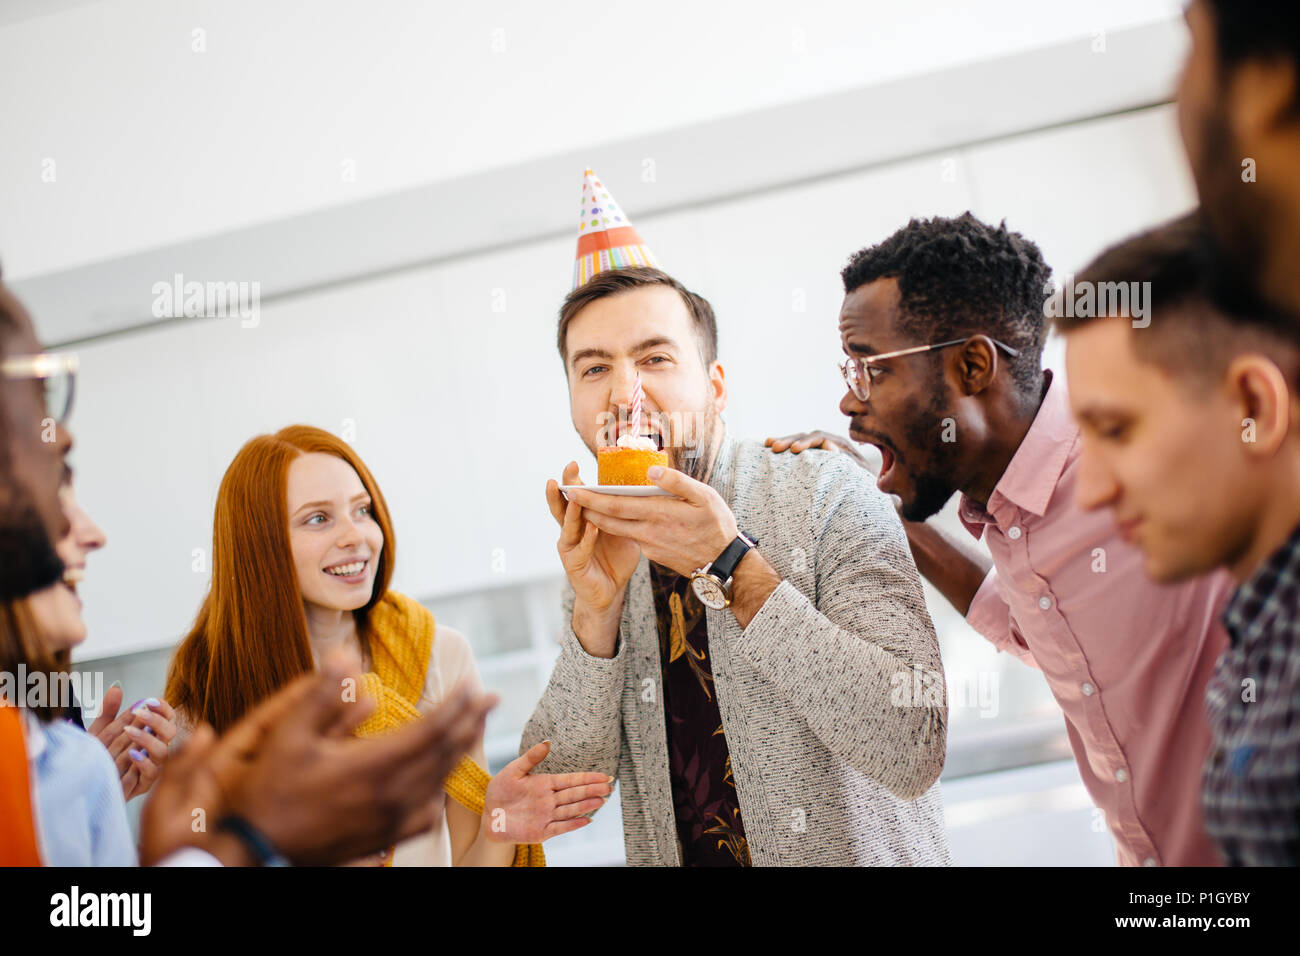 greedy guy is trying to bite a bigger peace of cake in front of friends - Stock Image